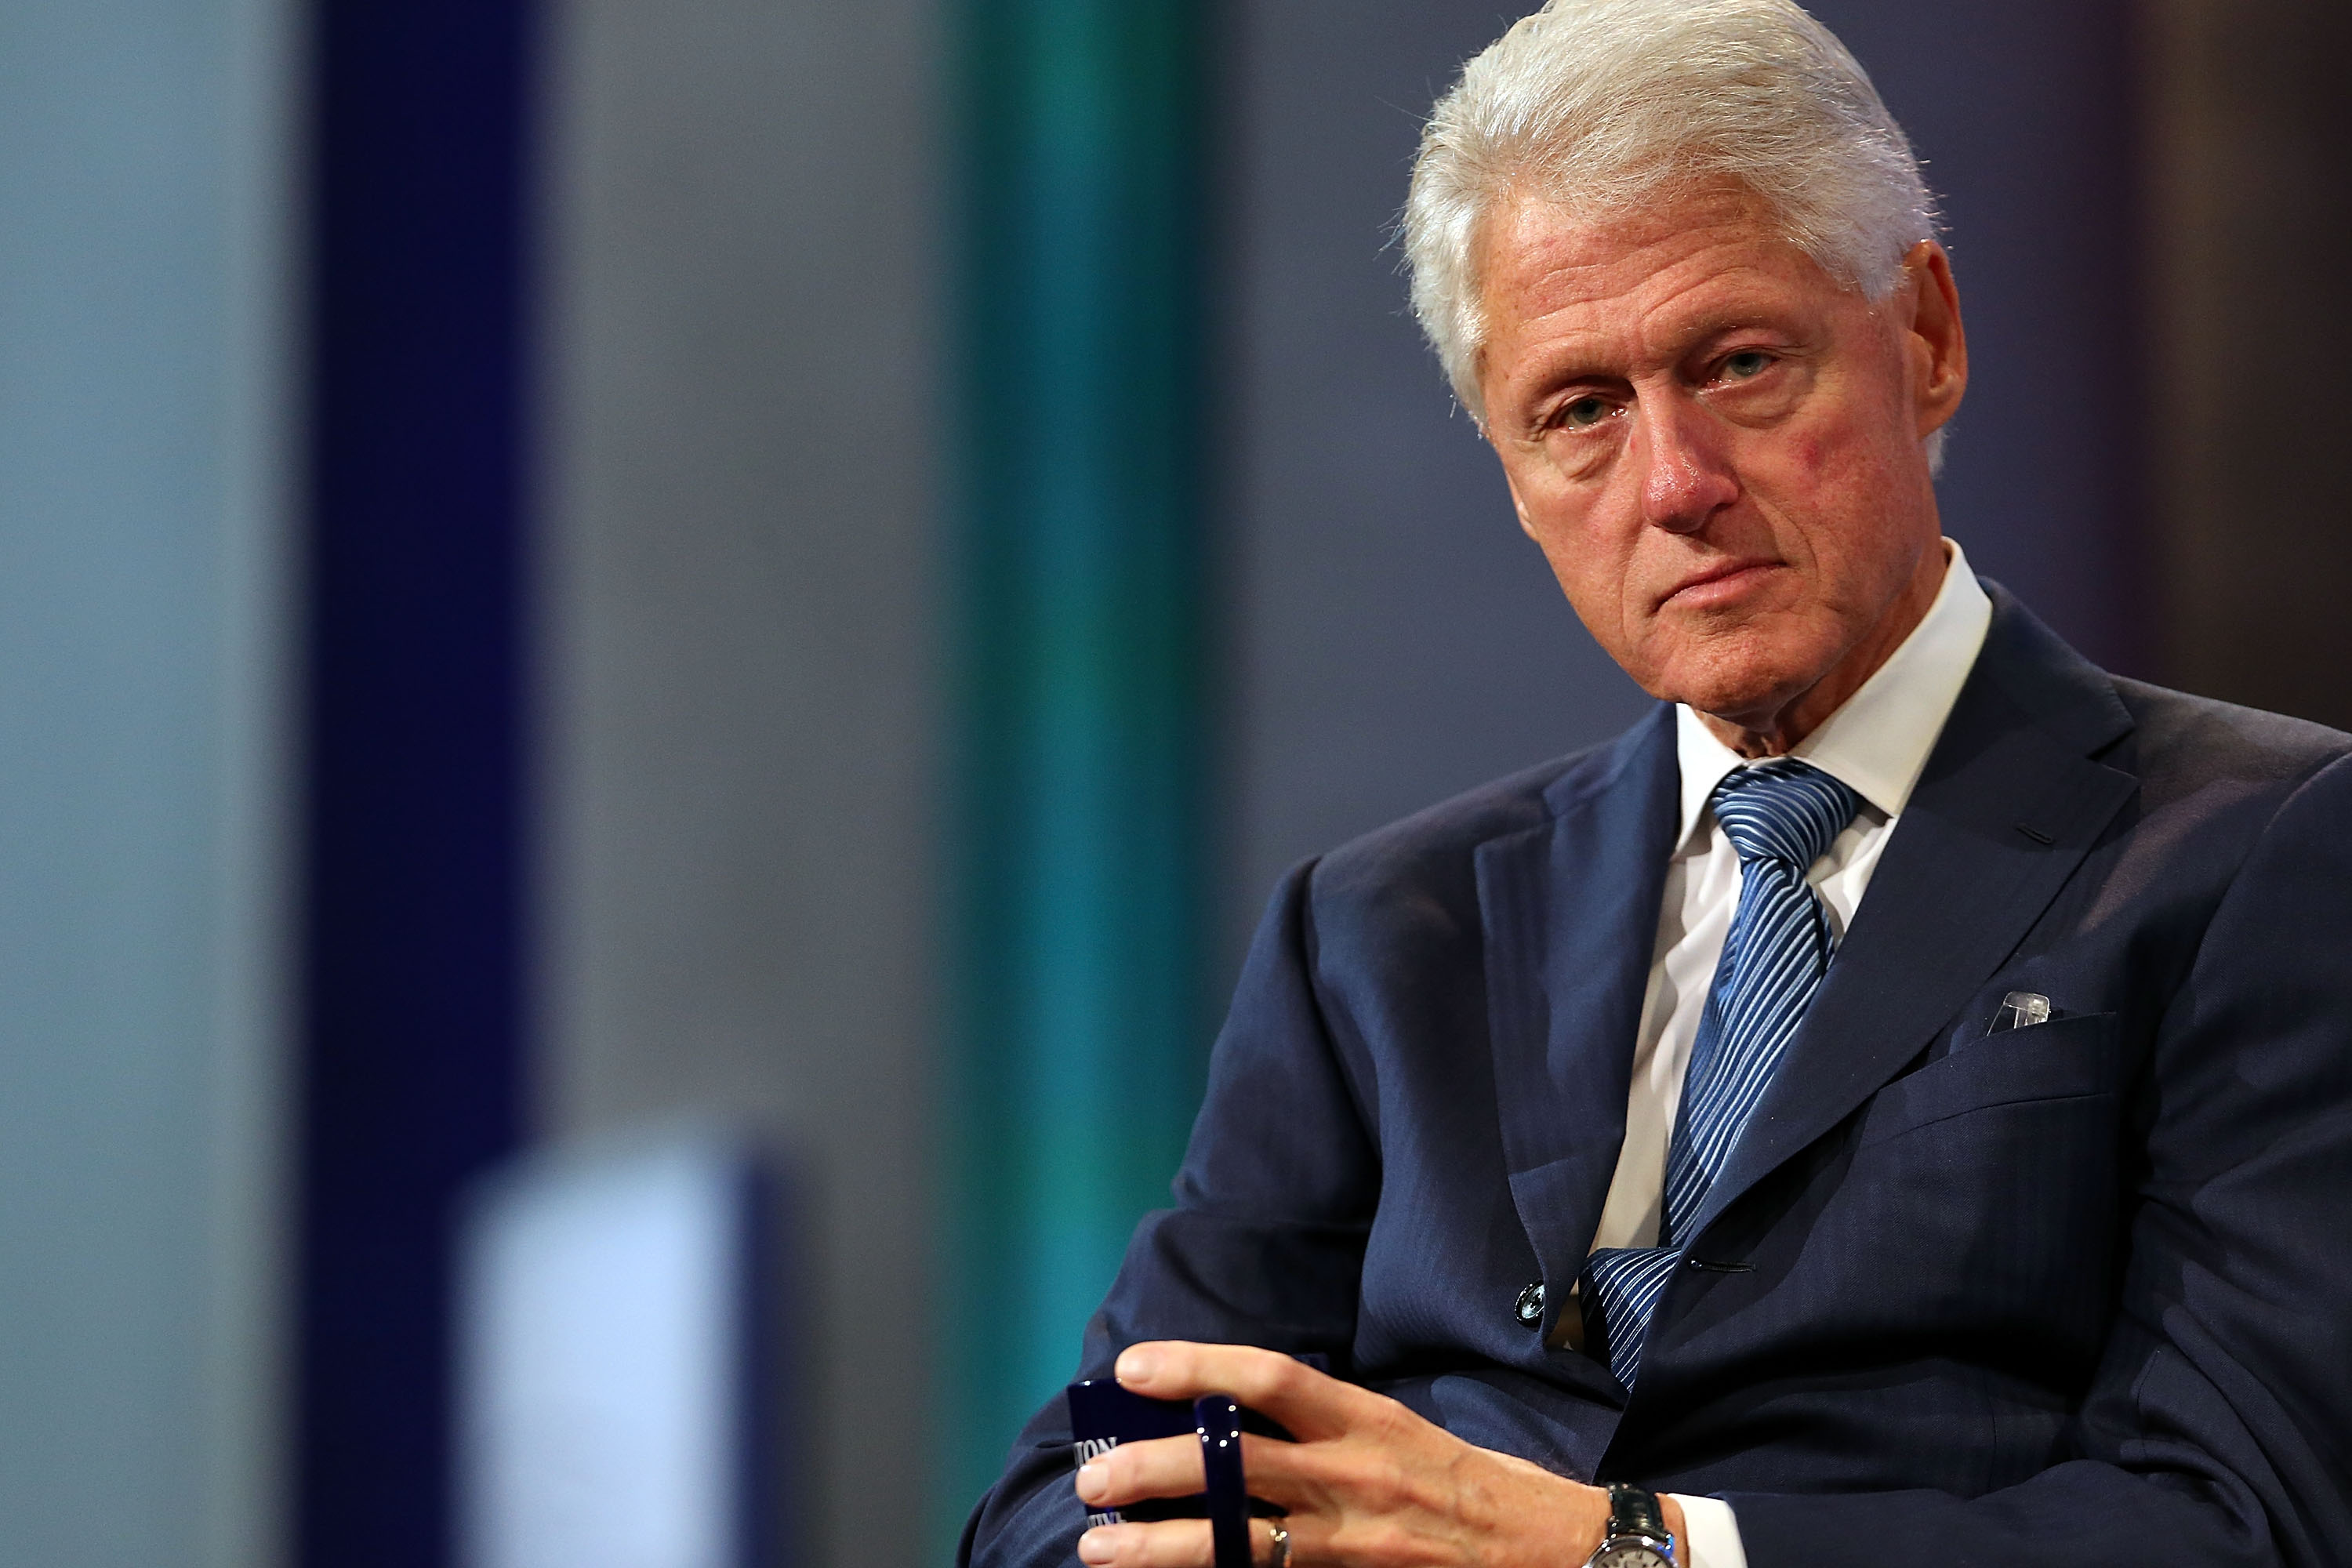 an analysis of the bill clinton versus bob dole 6 analysis 7 2016 democratic national convention william jefferson bill clinton (b william jefferson blythe iii on august 19, 1946, in hope, ar) was the 42nd president of the united states 1996 presidential election in 1996, clinton defeated republican challenger bob dole for the united.